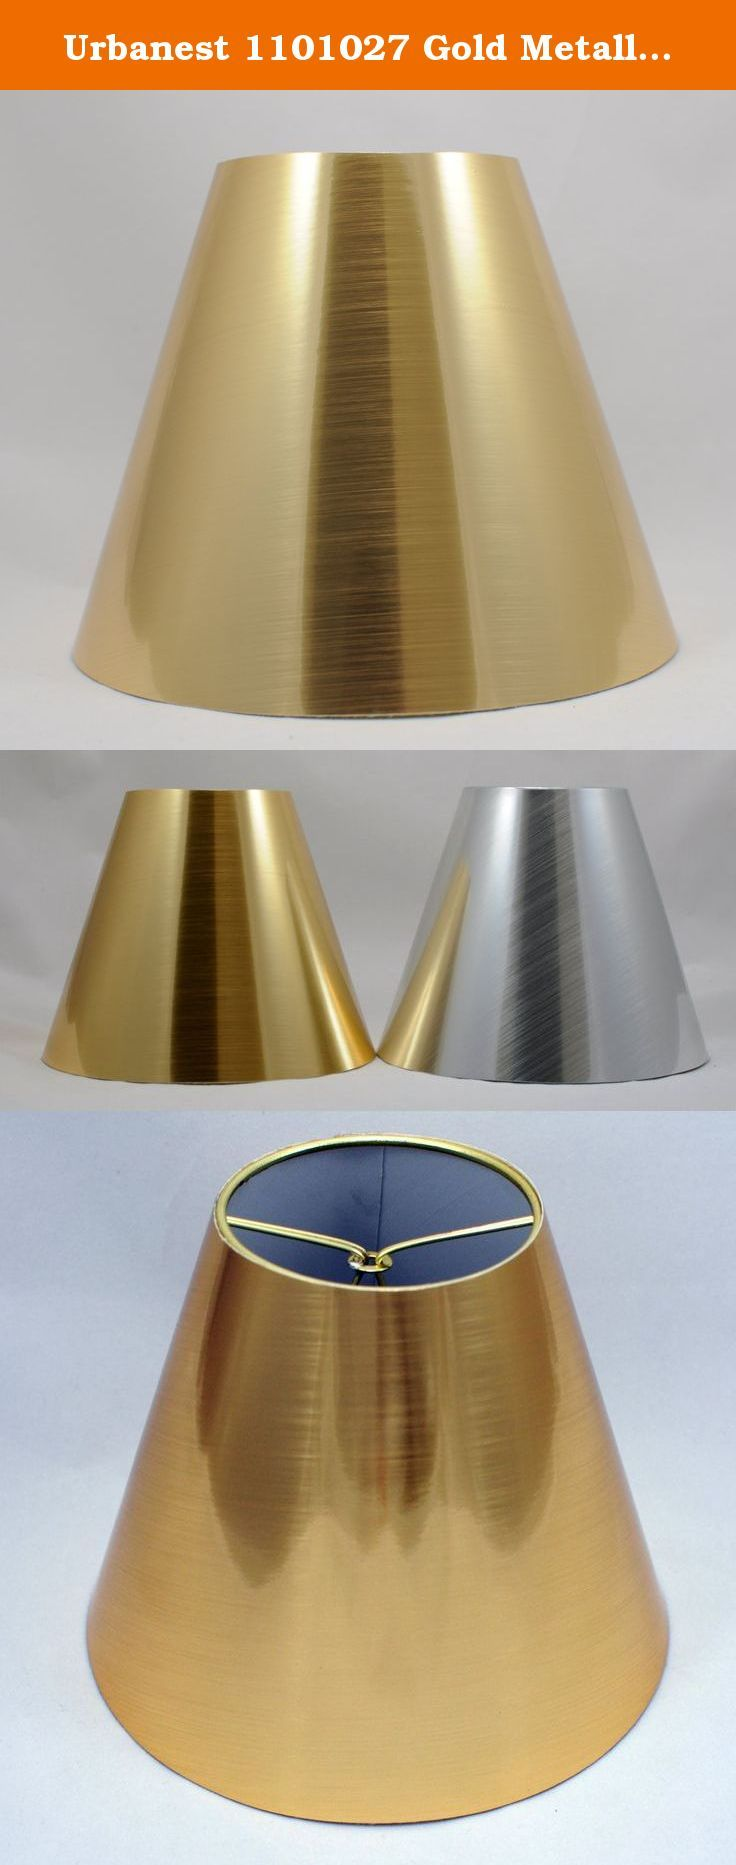 Urbanest 1101027 gold metallic chandelier lamp shades 6 inch urbanest 1101027 gold metallic chandelier lamp shades 6 inch clip on urbanest aloadofball Image collections